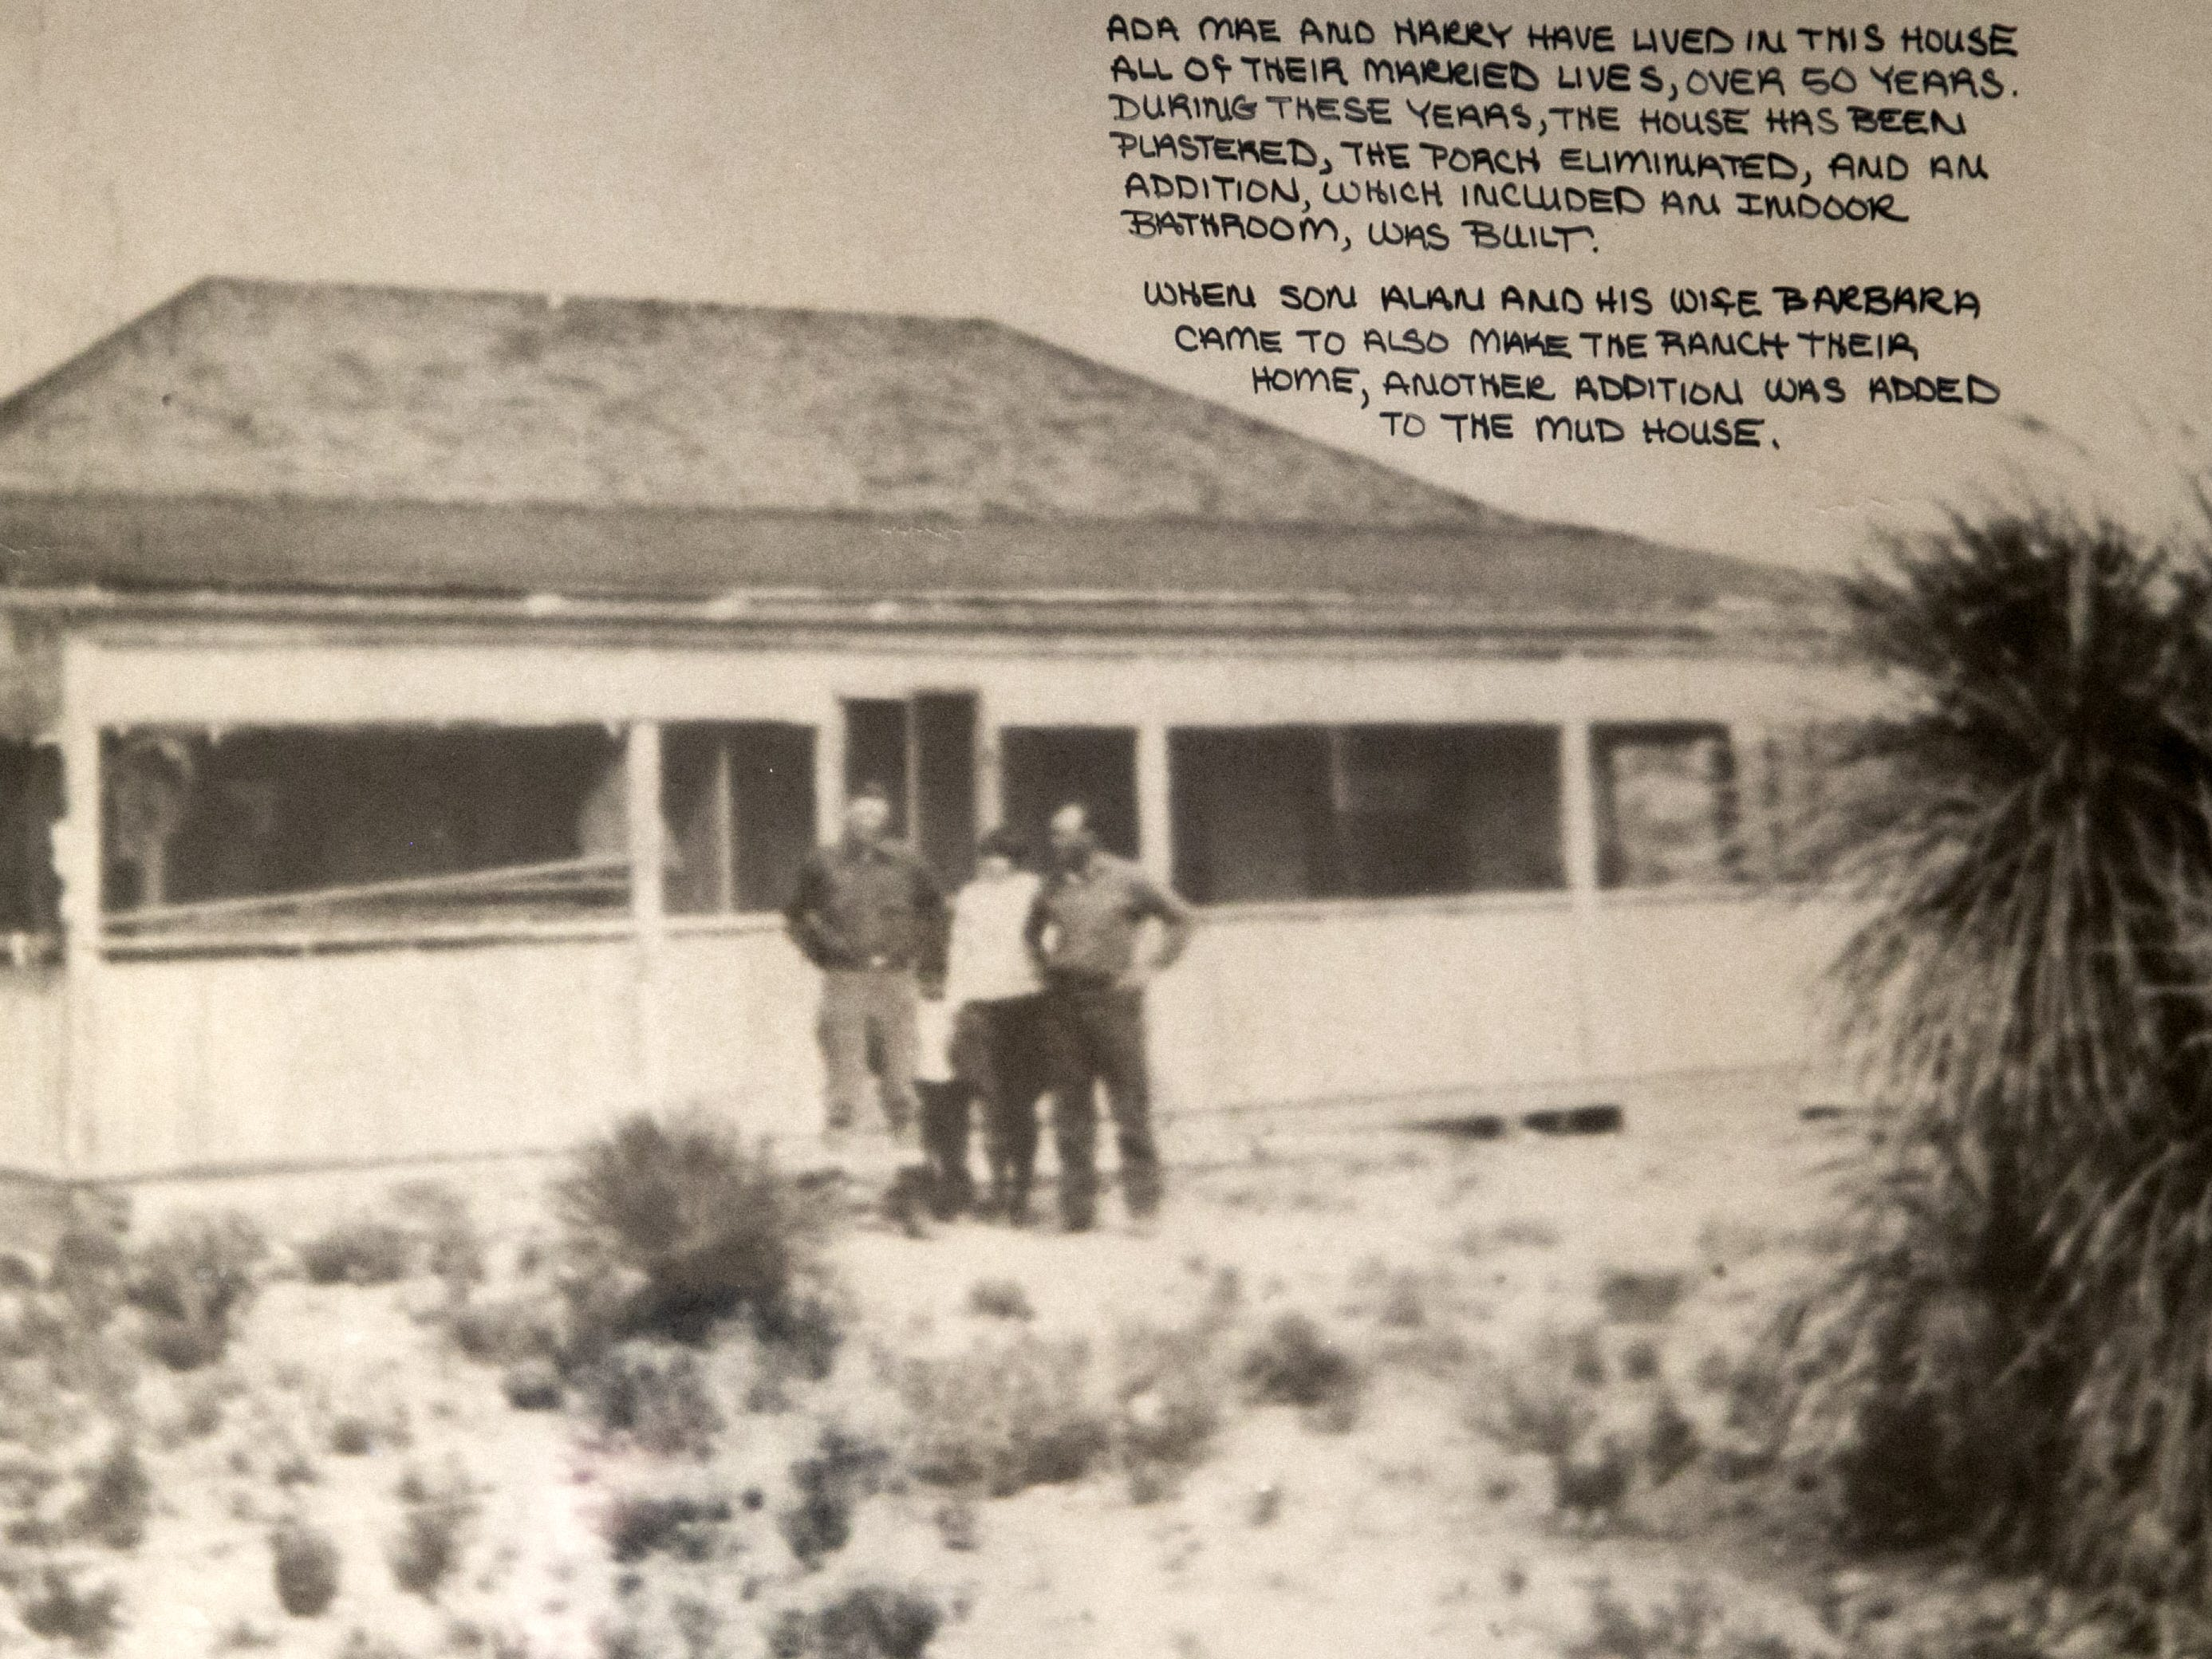 Harry Alfred Day (far right) and Ada Mae Wilkey Day (second from right), the parents of former Supreme Court Justice Sandra Day O'Connor, in front of the home O'Connor grew up in on the Lazy B Ranch in Duncan, Ariz. This photo is from the mid-1920s.